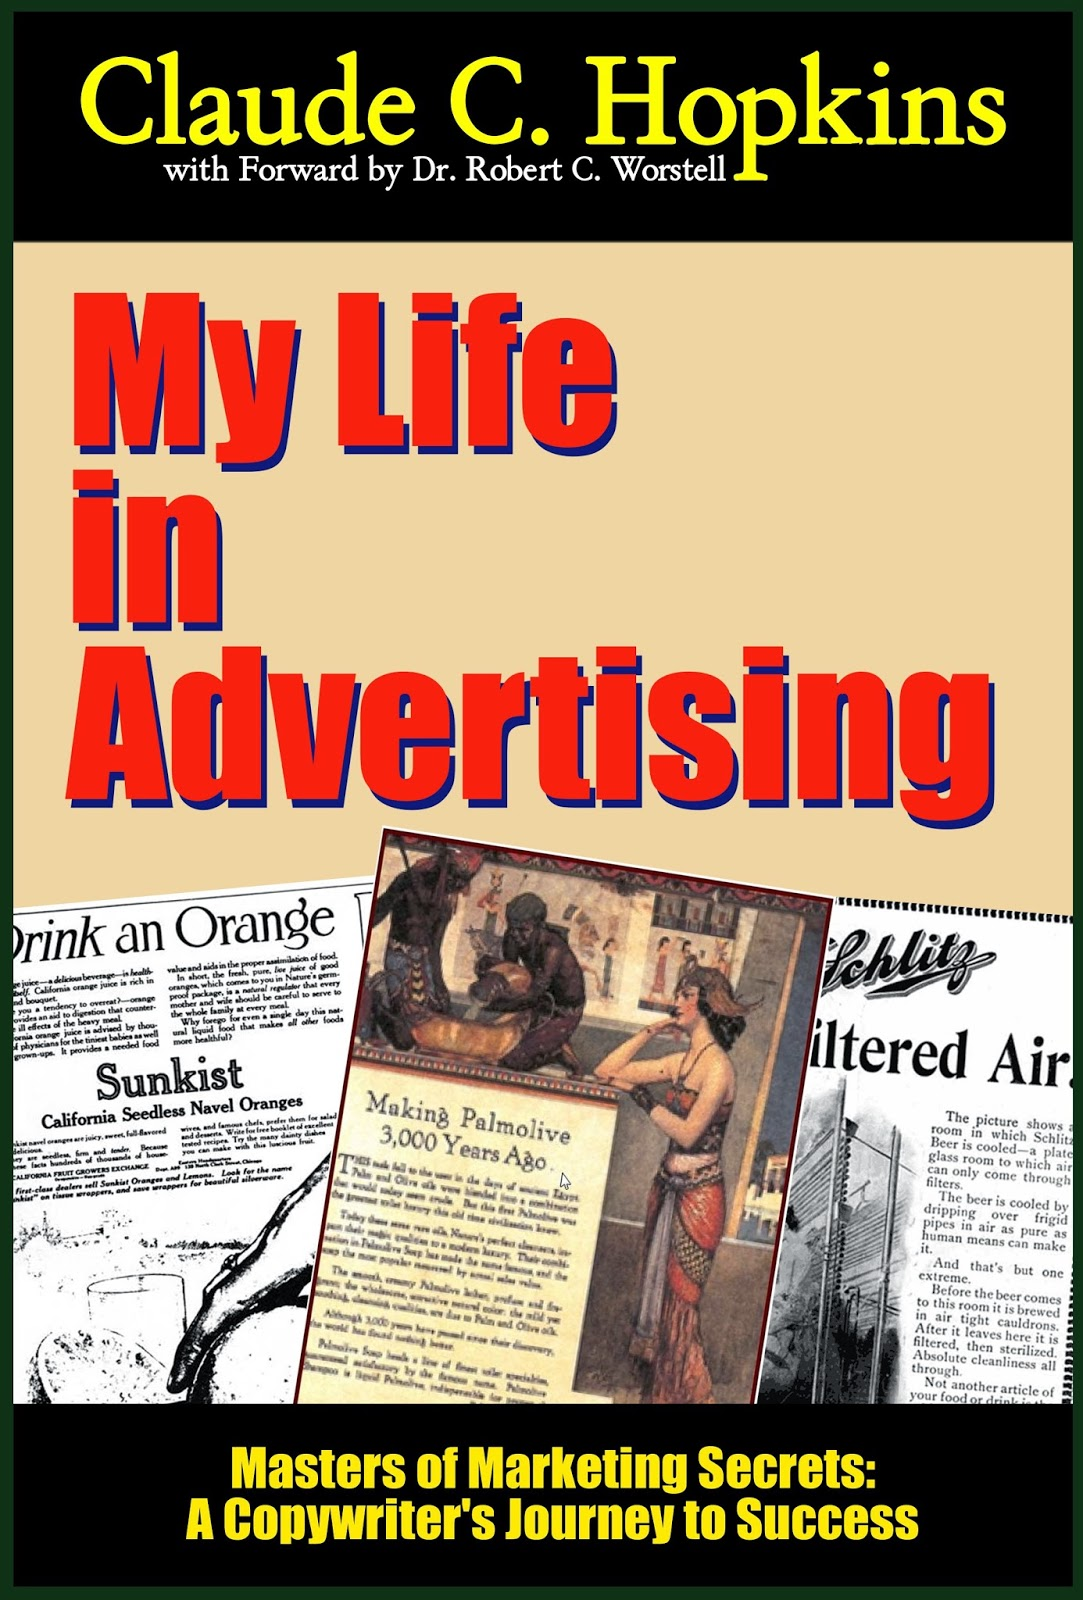 Claude C. Hopkins My Life in Advertising available as ebook and print versions in all fine bookstores.